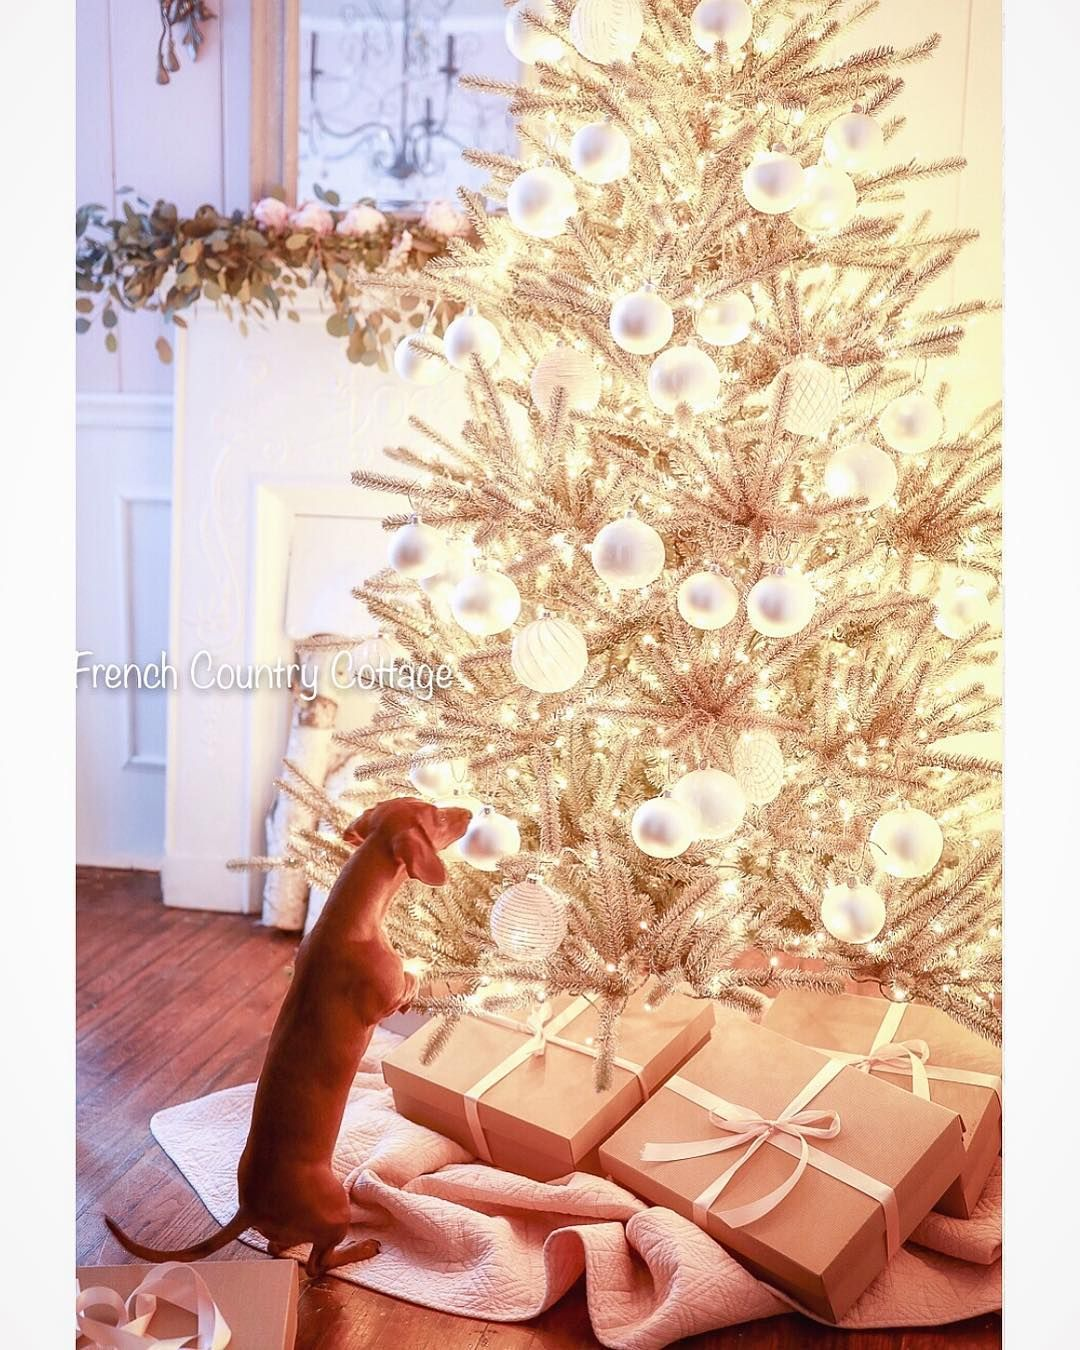 Holiday pet photo by frenchcountrycottage ; From Instagram